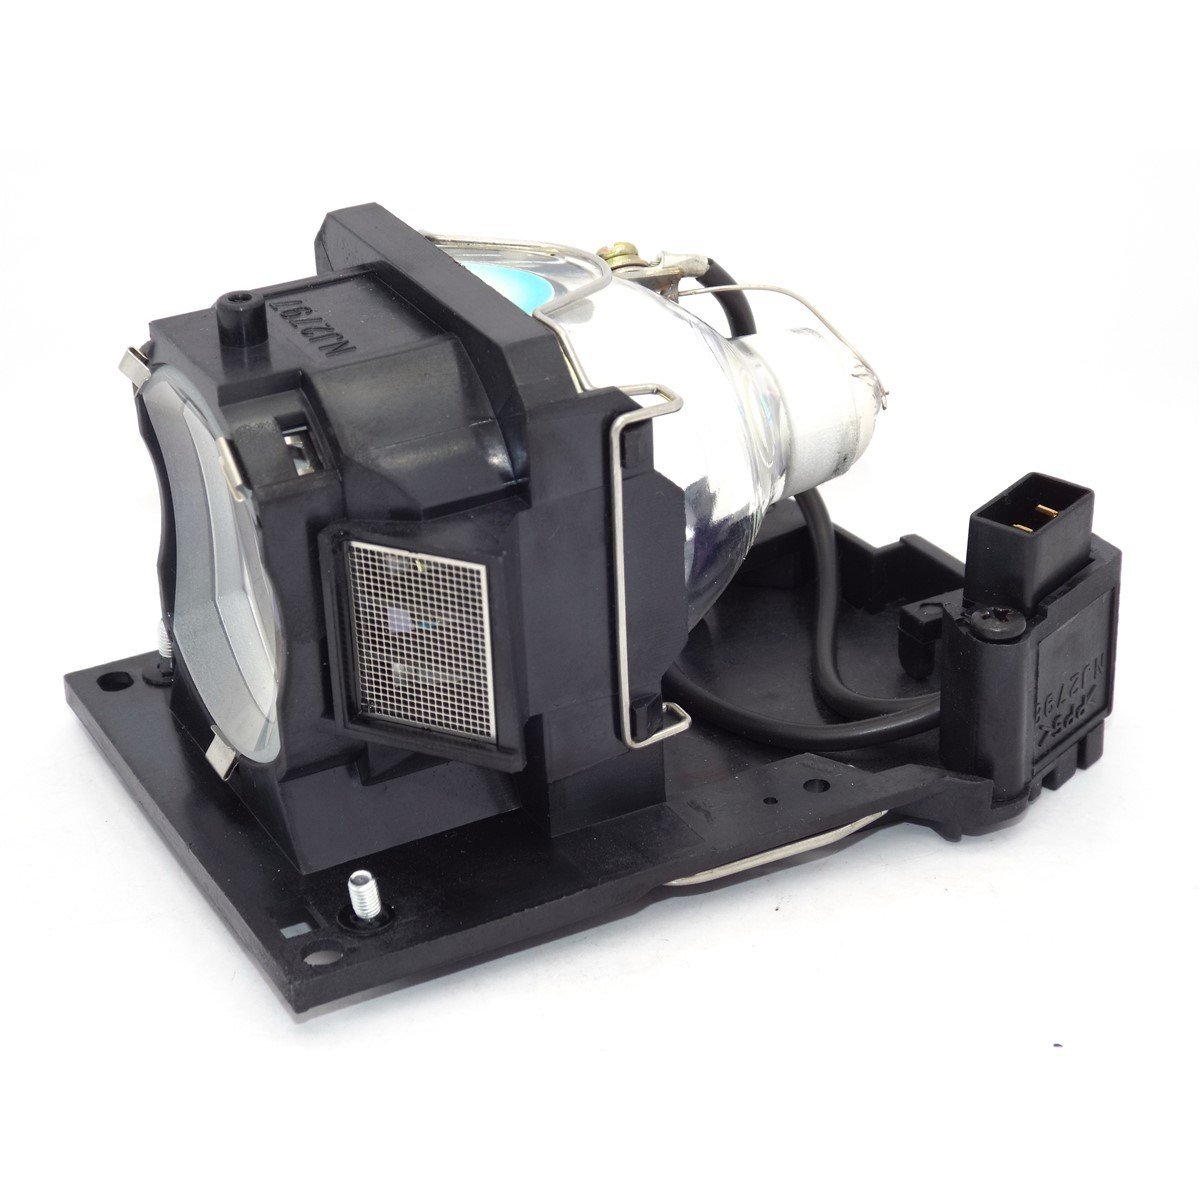 Sunbows Projector Lamp Fit Fit Fit For HITACHI CP-A220N Projector 739cfb